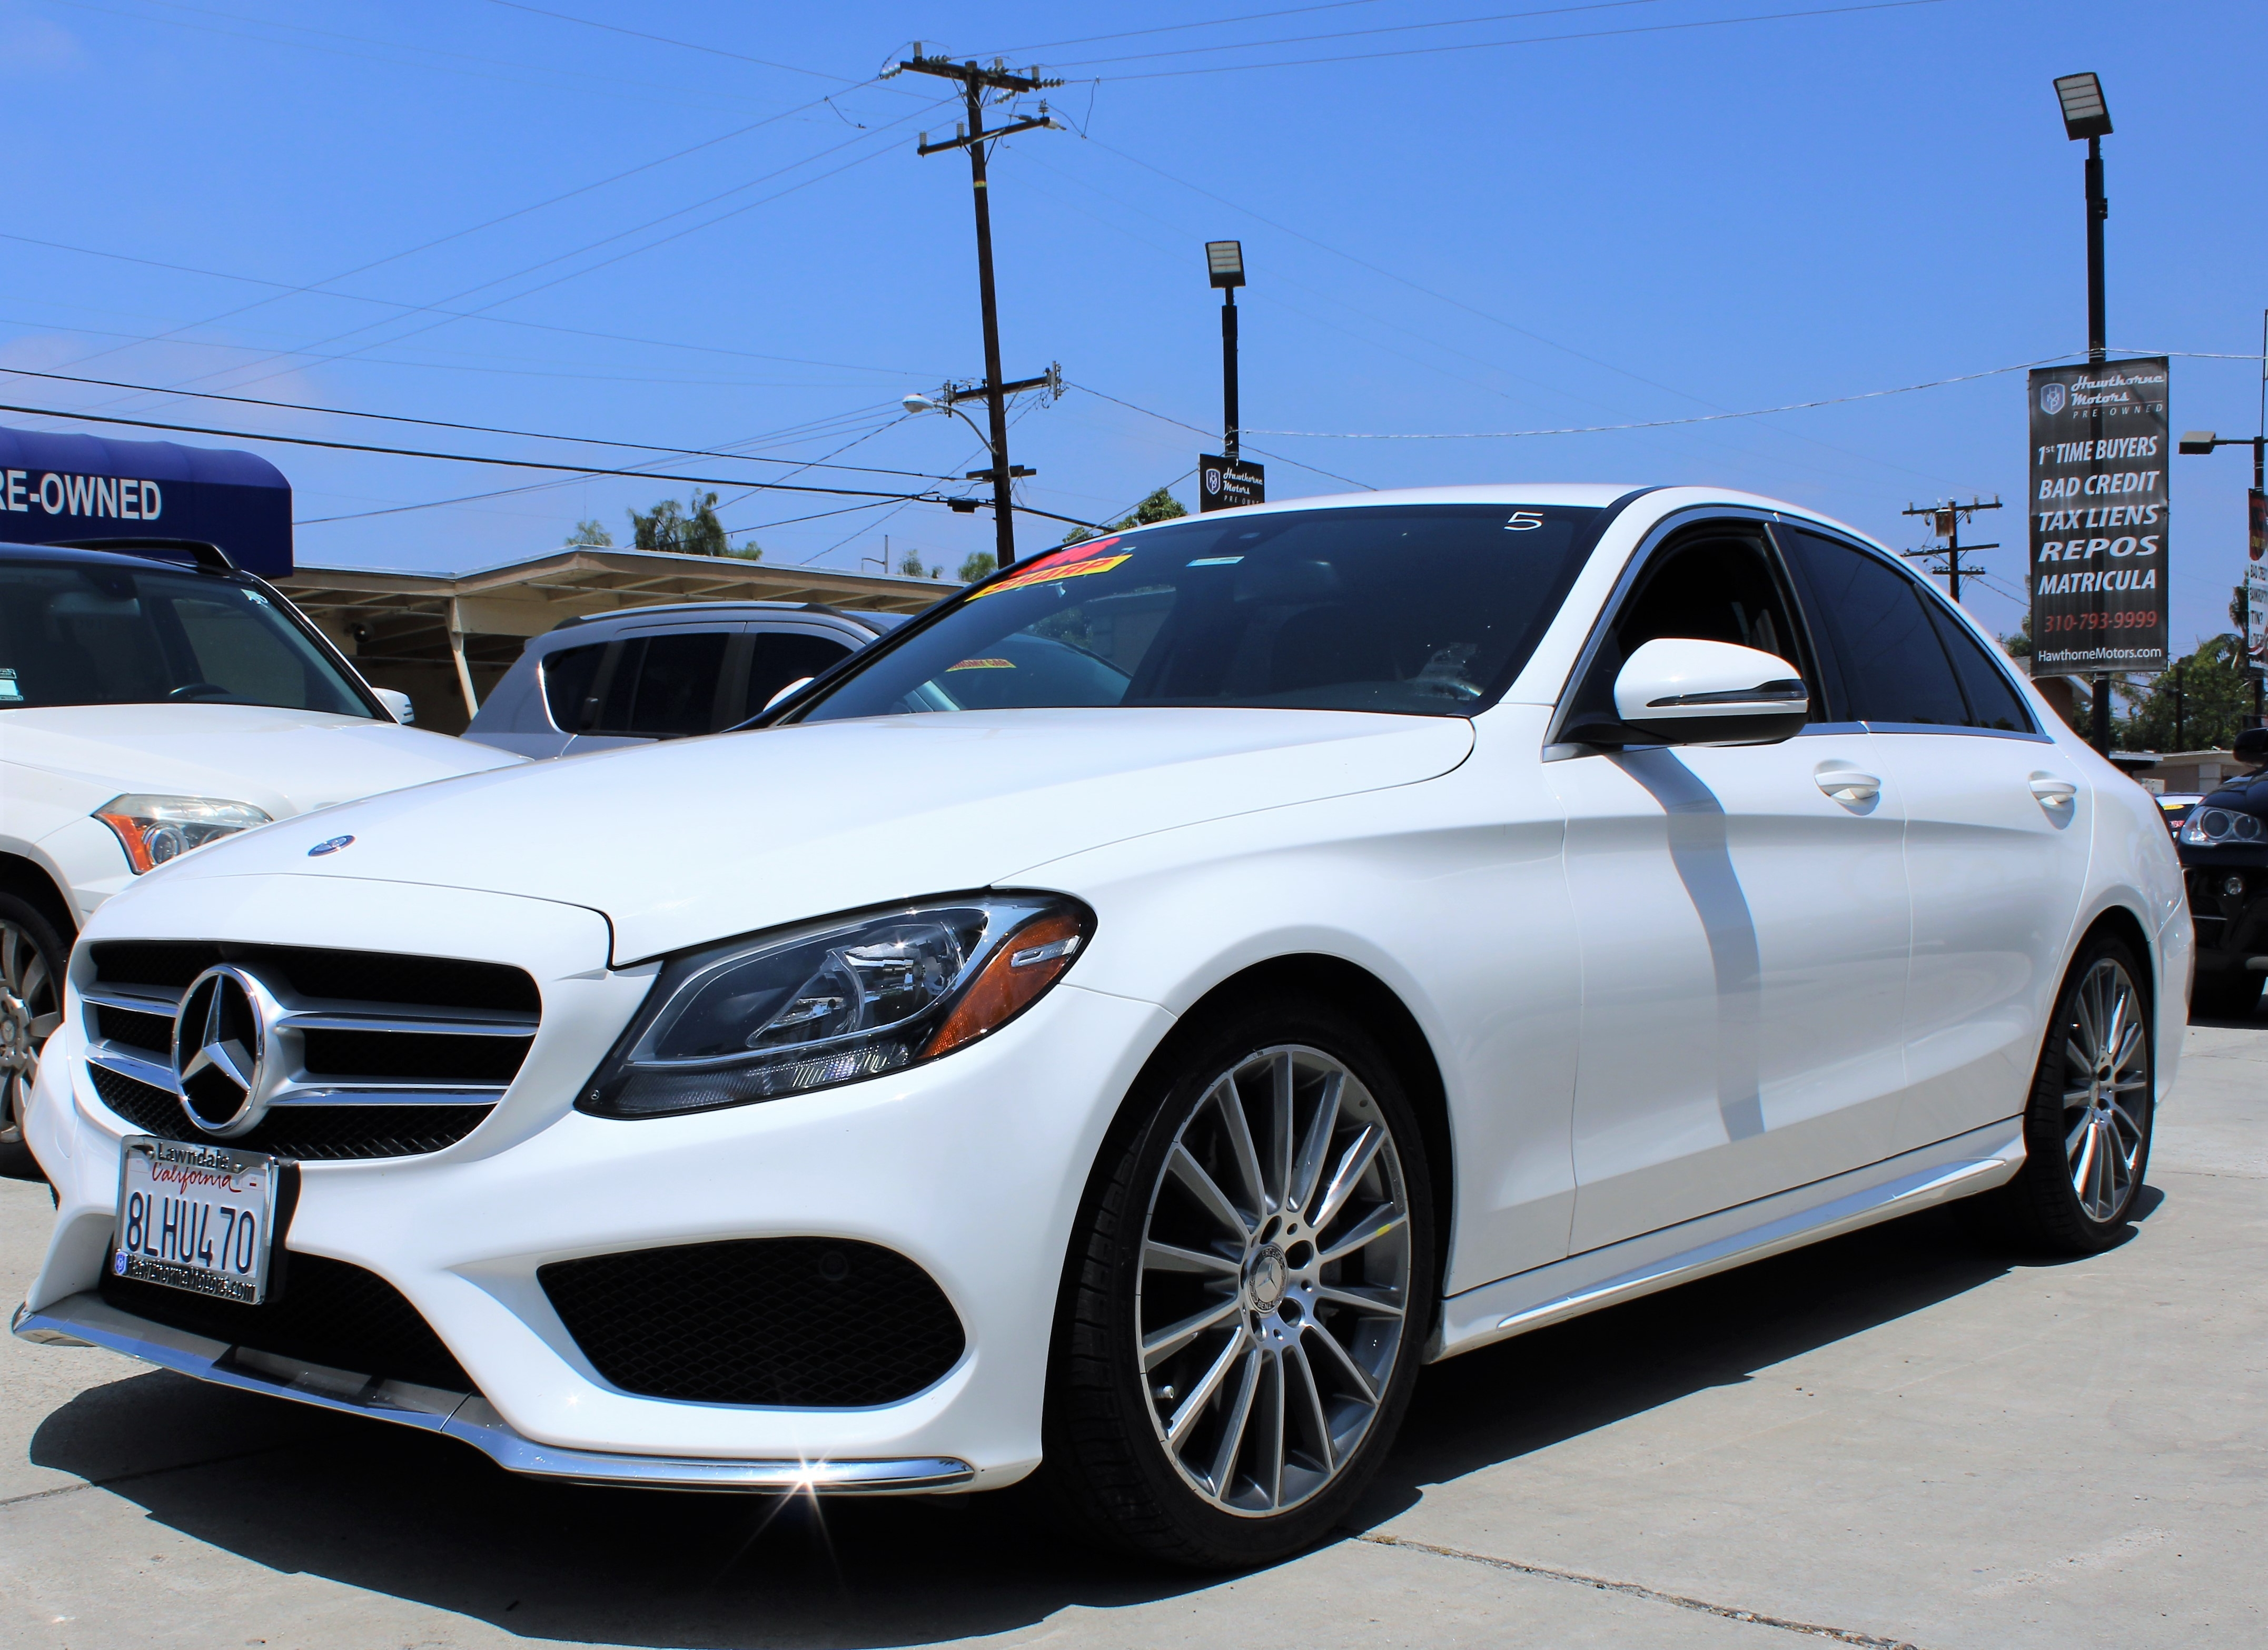 Preowned 2016 MERCEDES-BENZ C-Class 4dr Sdn C 300 RWD for sale by Hawthorne Motors Pre-Owned in Lawndale, CA